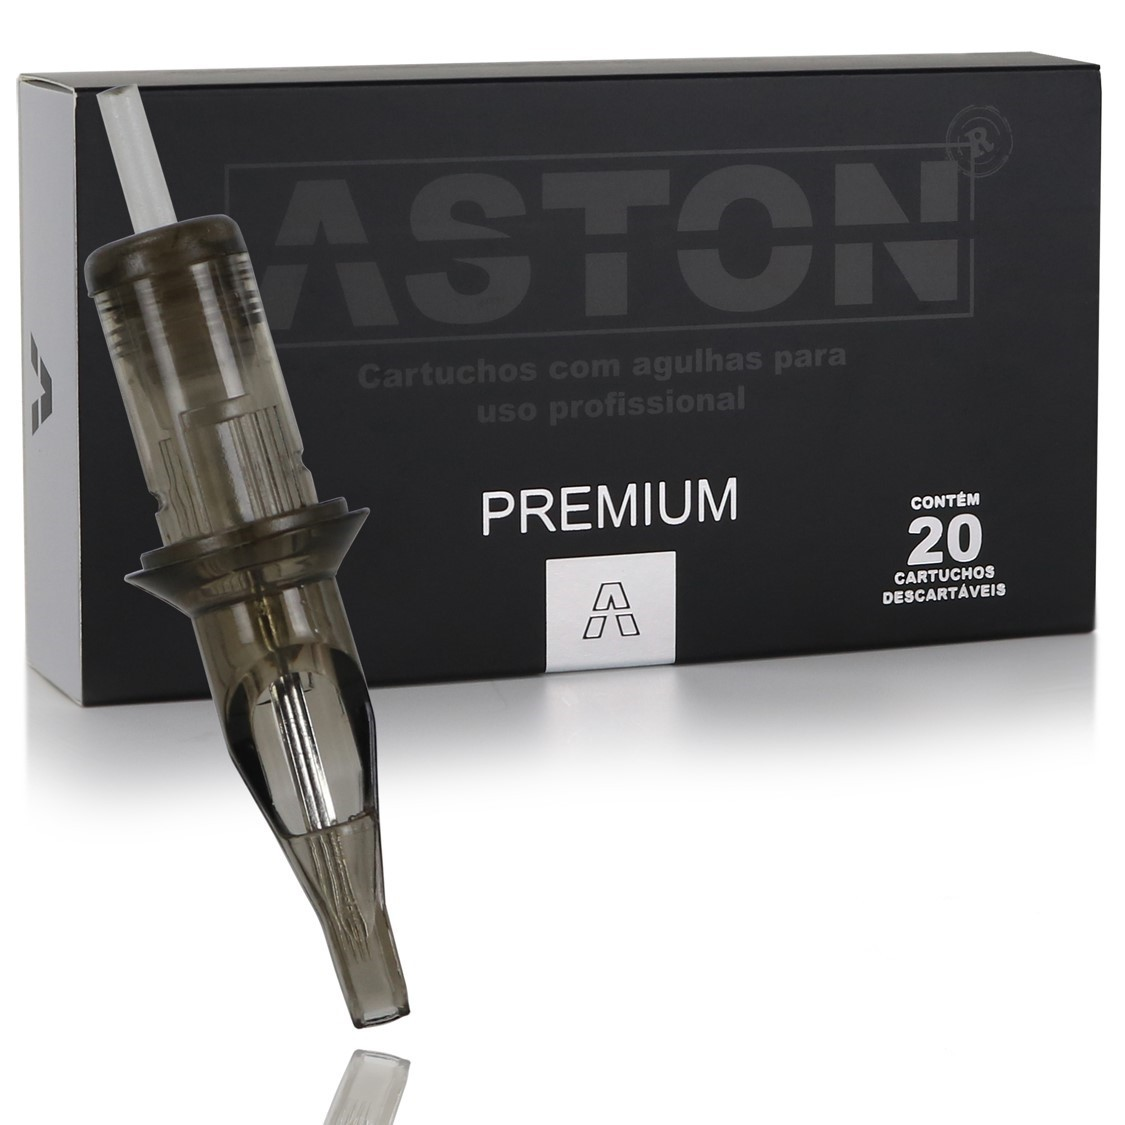 CARTUCHO ASTON PREMIUM PINTURA MR - 1007MR